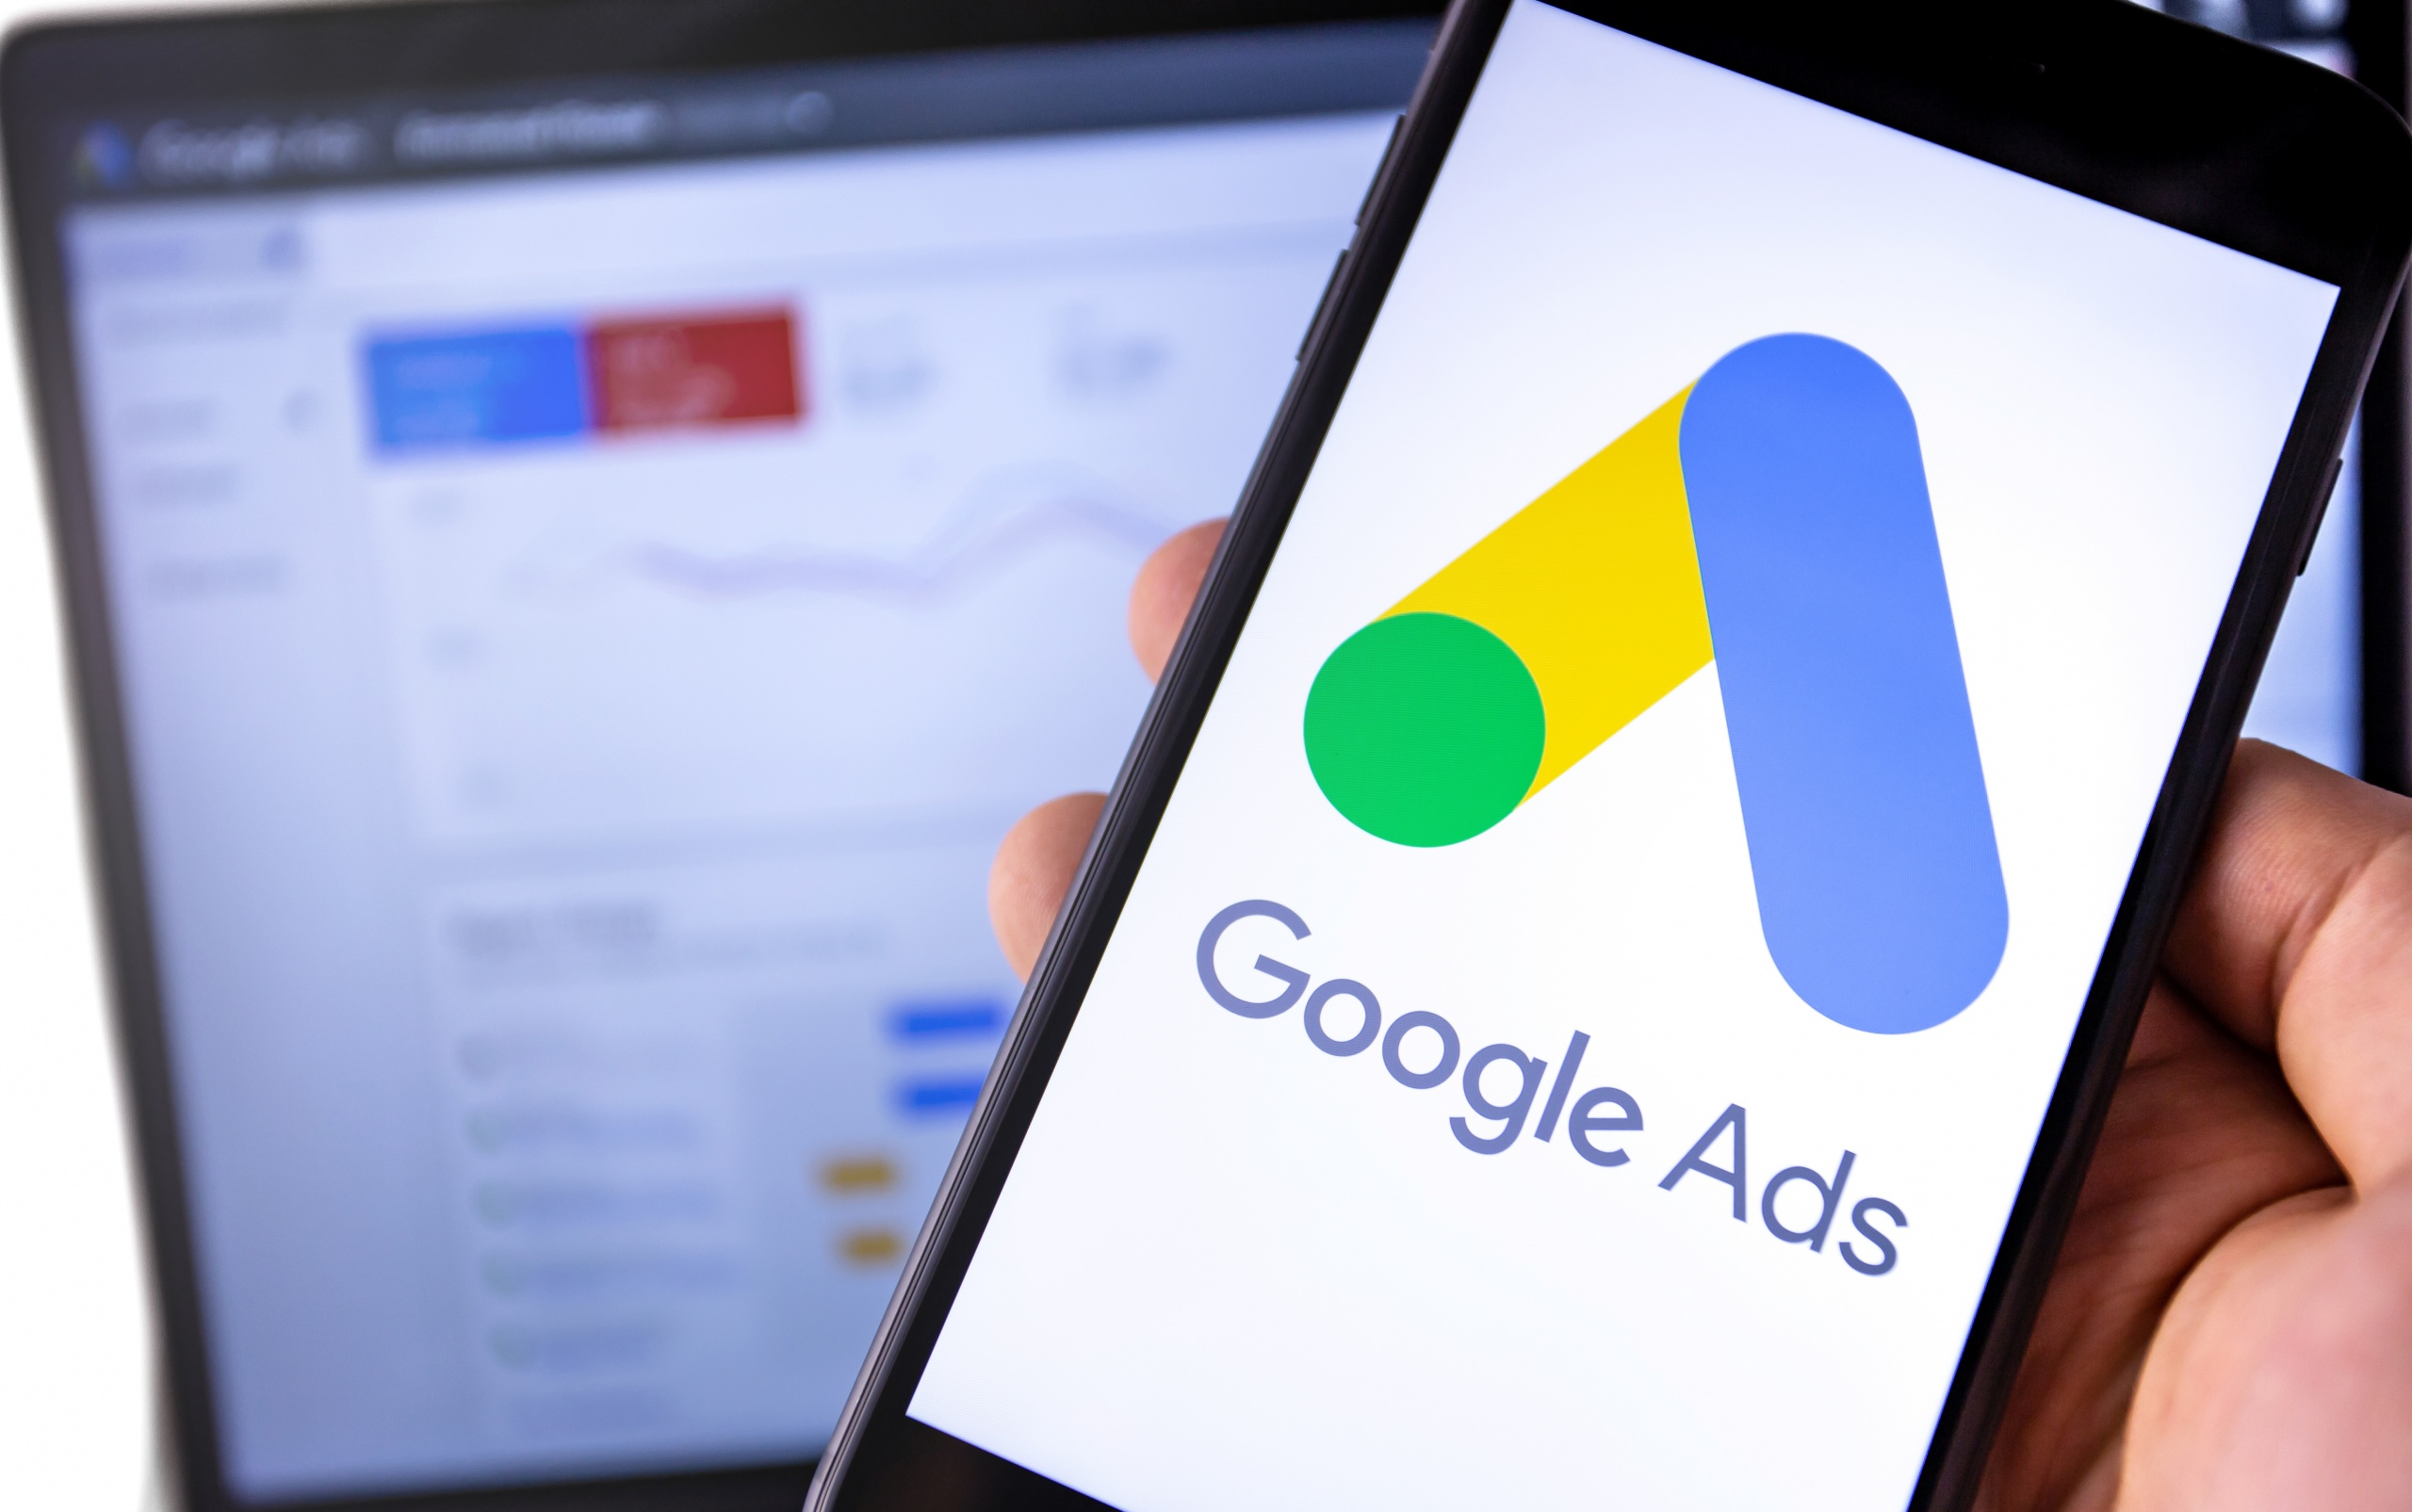 Google Ads support